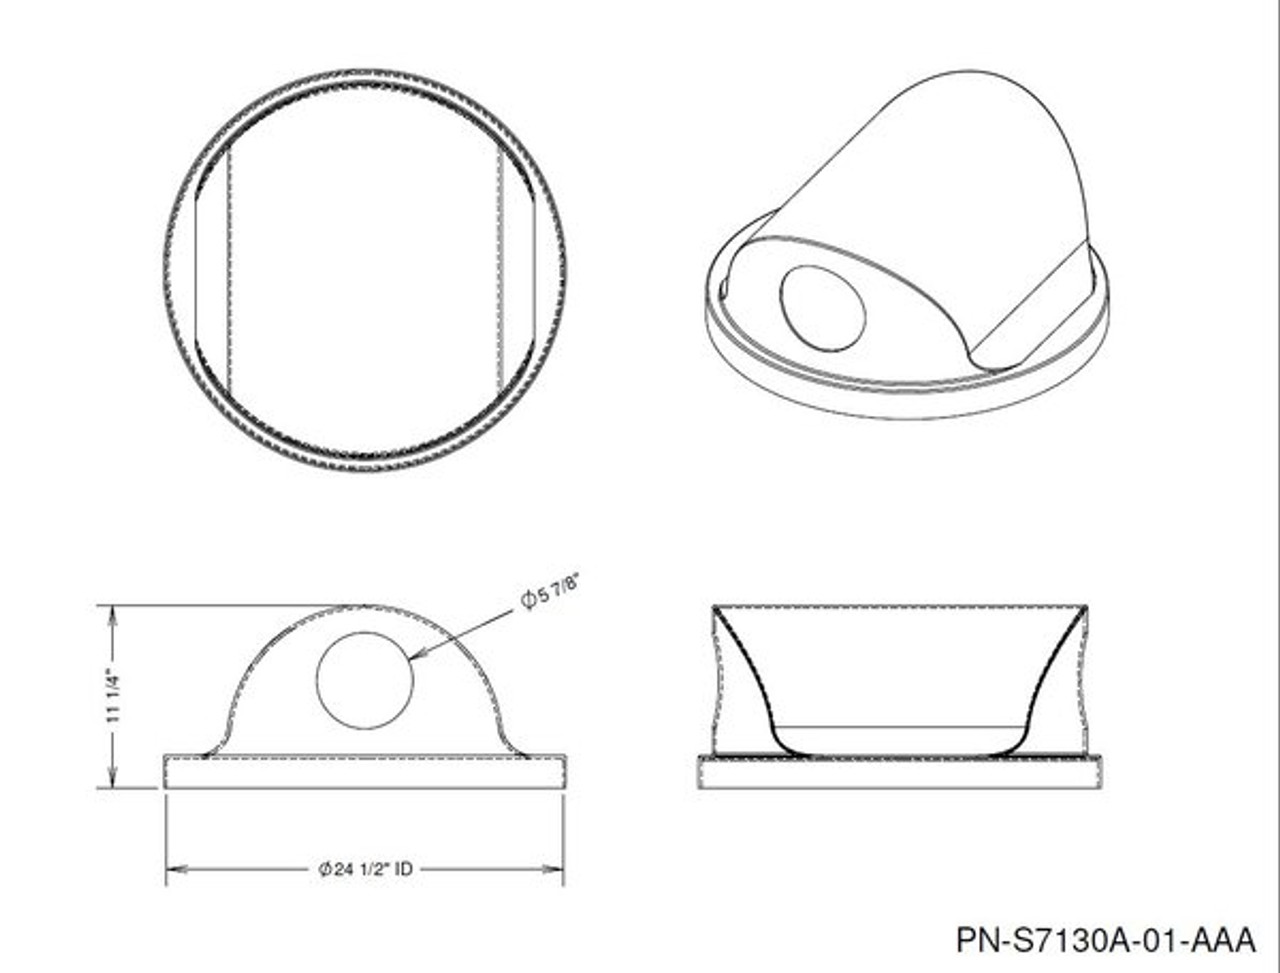 2 Way Recycle Opening Lid Drawing